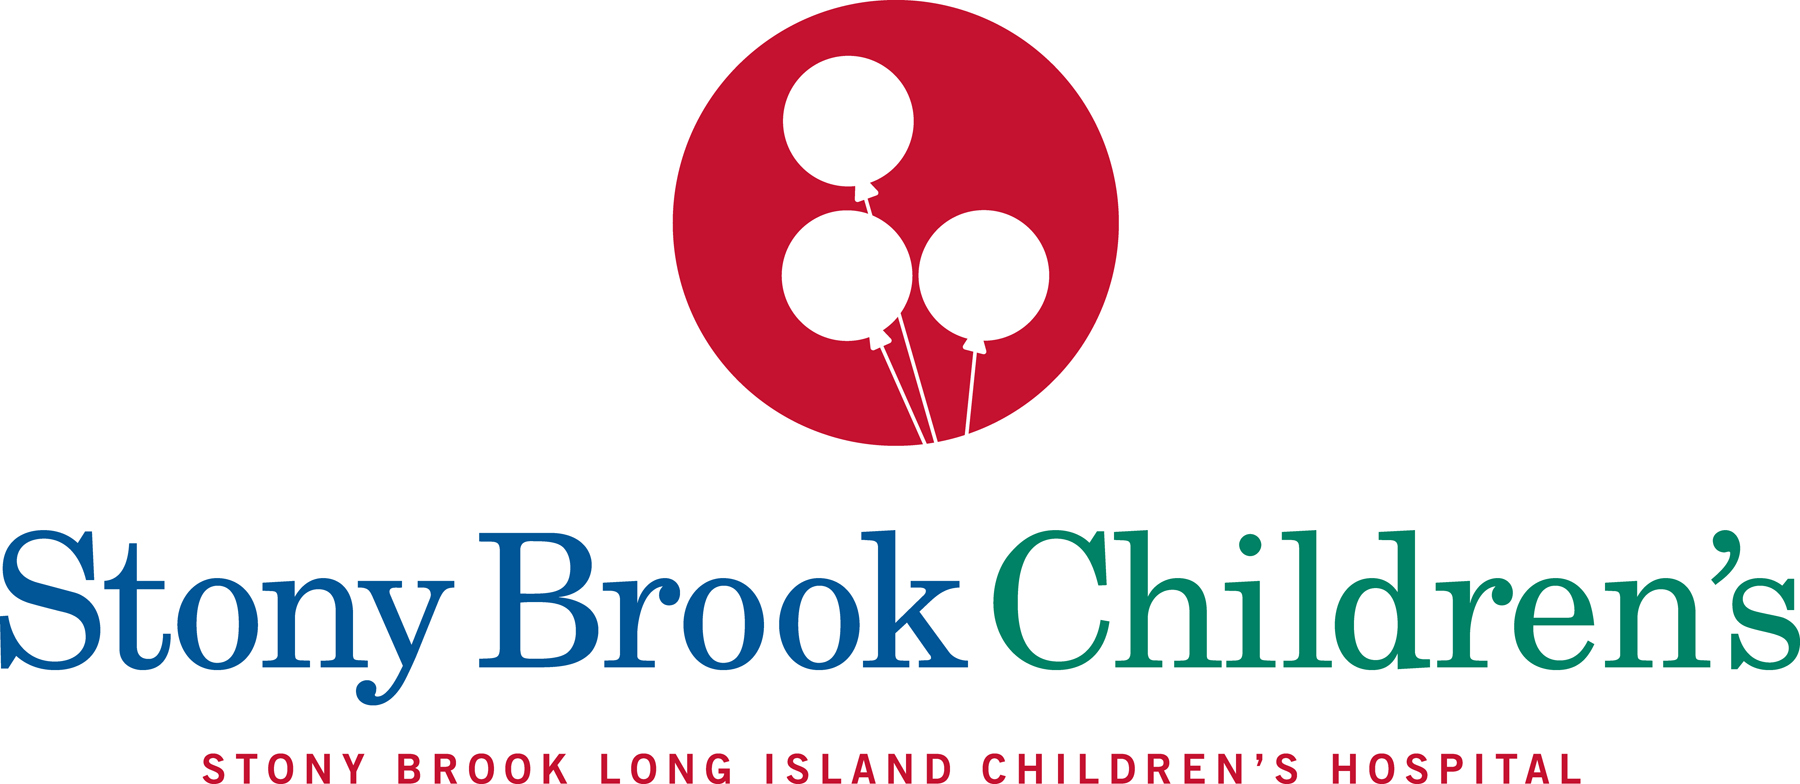 Stony brook childrens 1